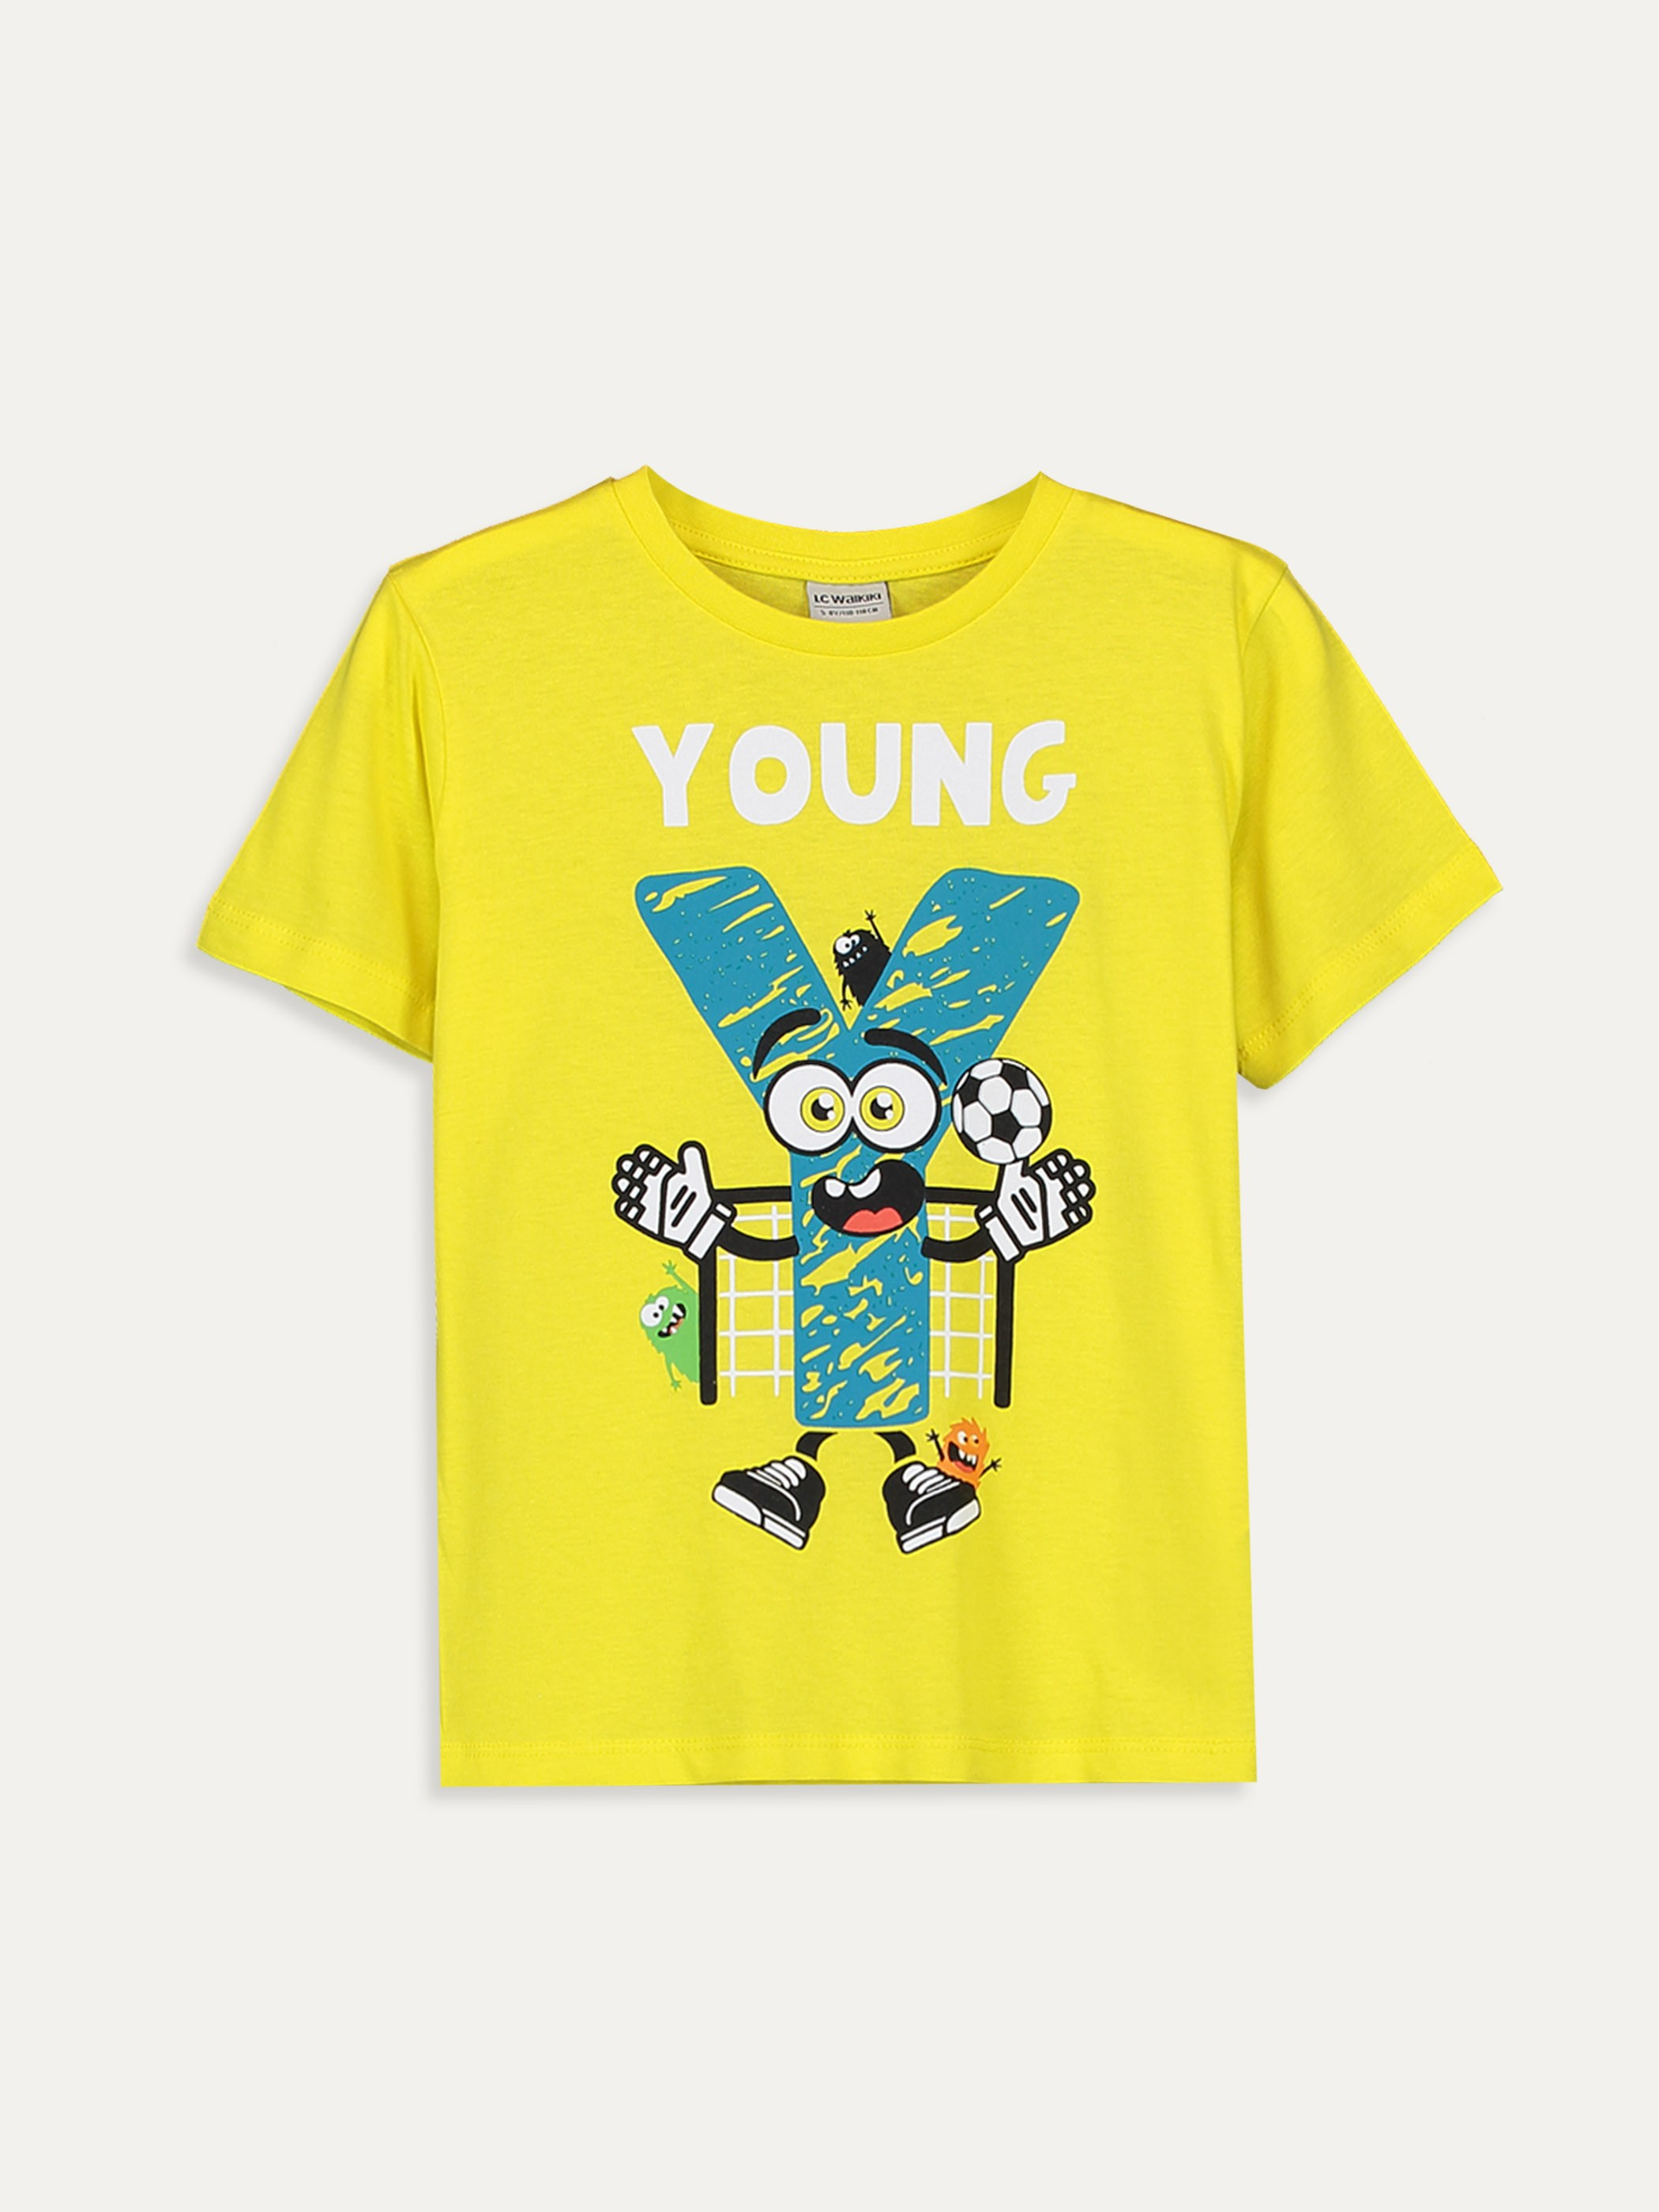 YELLOW - T-Shirt - 9SA199Z4